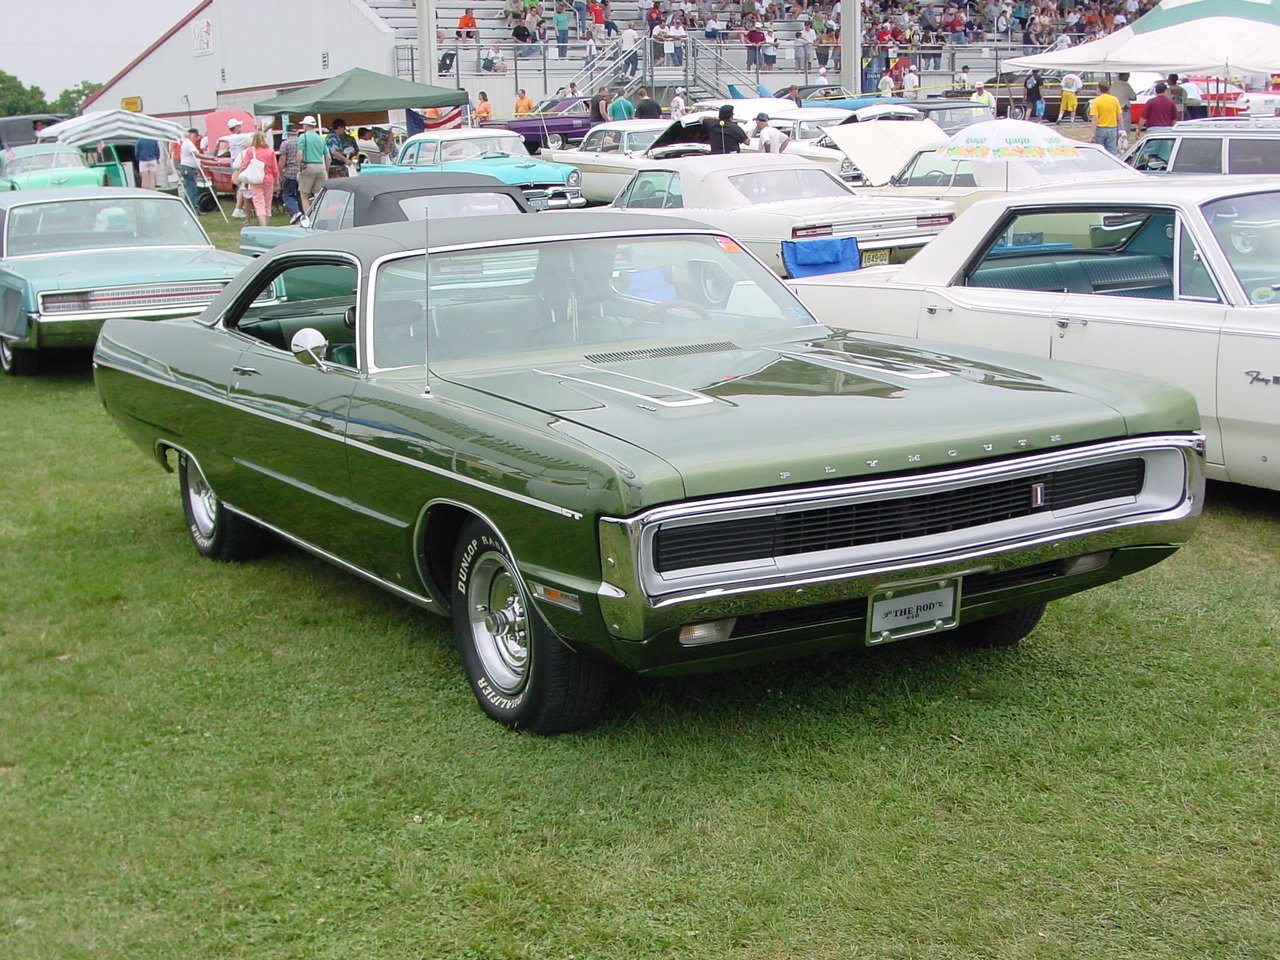 1970 Plymouth Fury GT